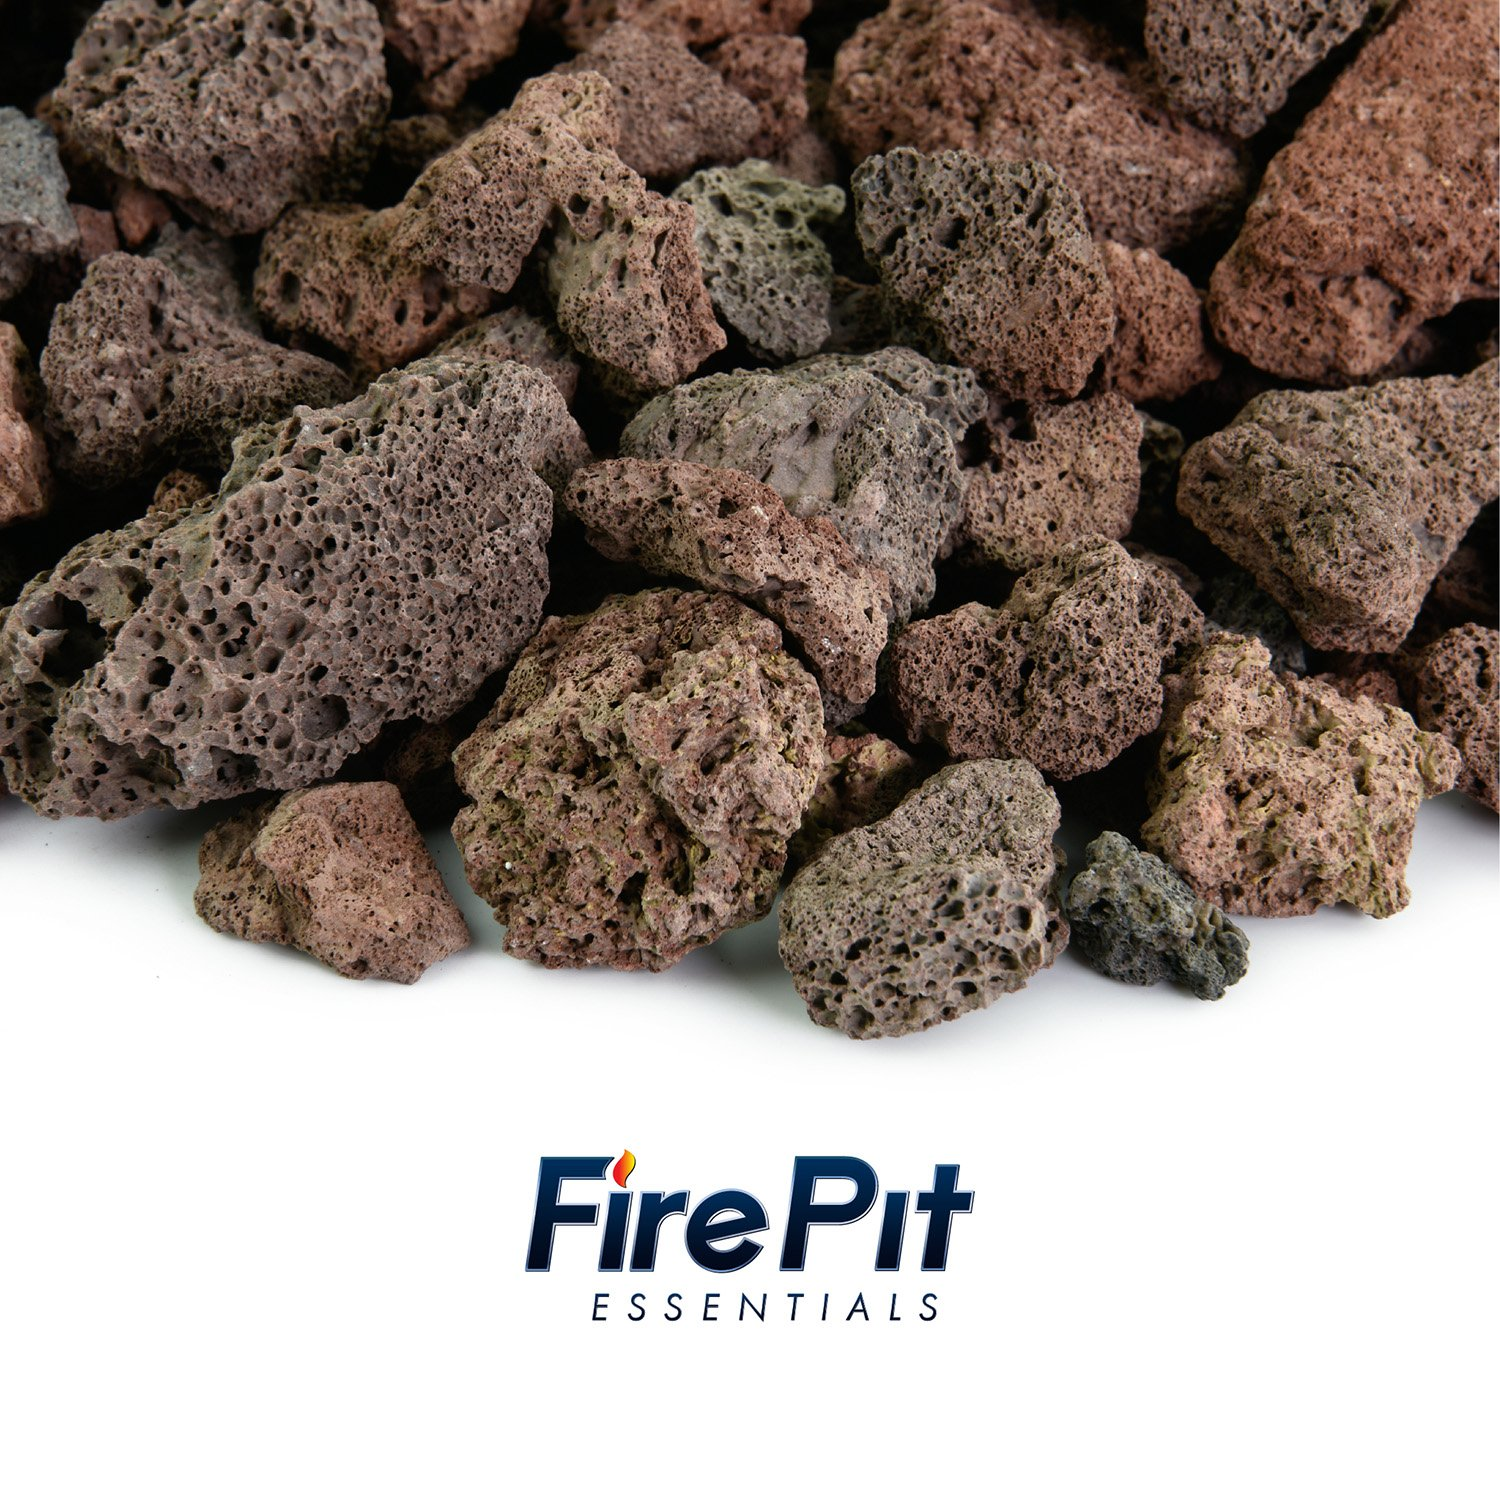 Red 3/4 Inch Lava Rock | Fireproof and Heatproof Volcanic Lava Rock, Perfect for Fire Pits, Fireplaces, BBQs and more. Indoor and Outdoor use - Natural Stones | 10 Pounds by Fire Pit Essentials